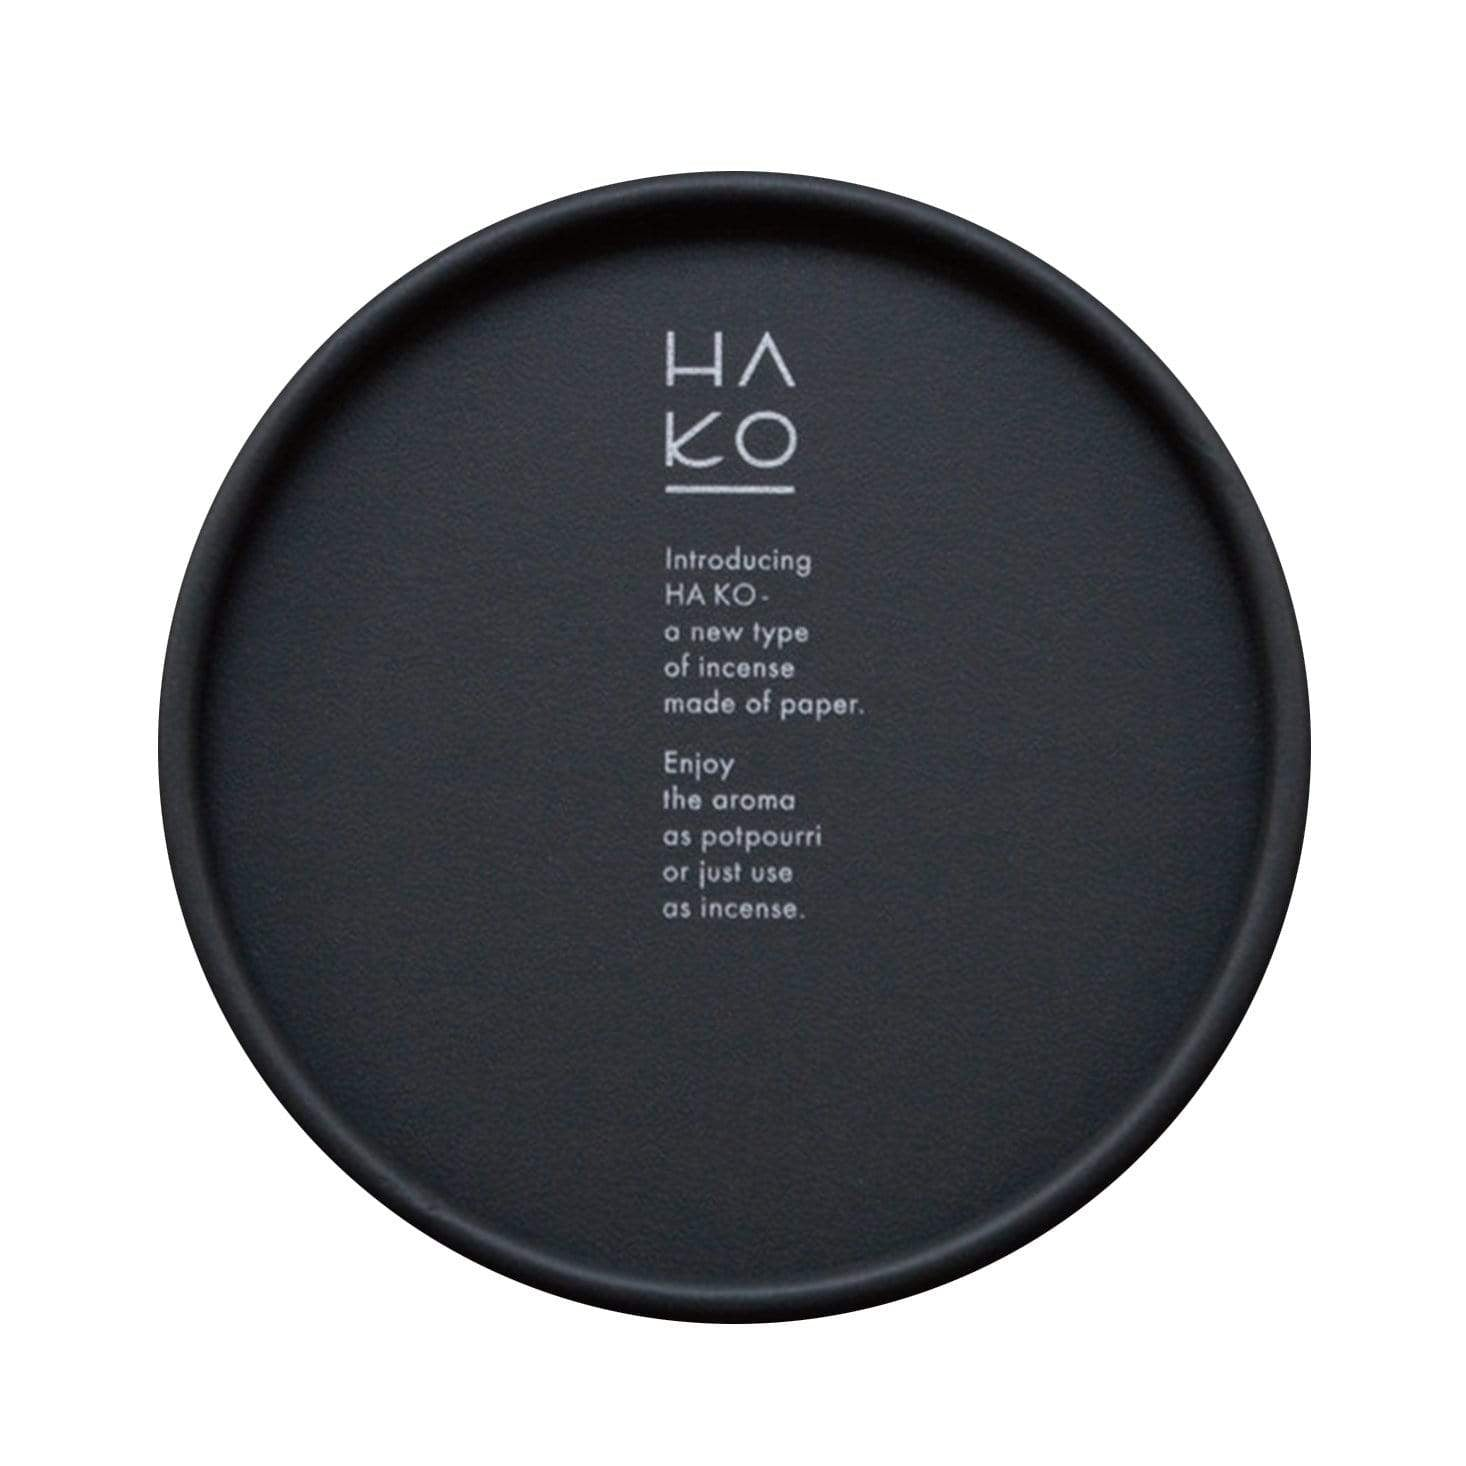 HA KO Black Paper Incense - Sleep (Set of 6)